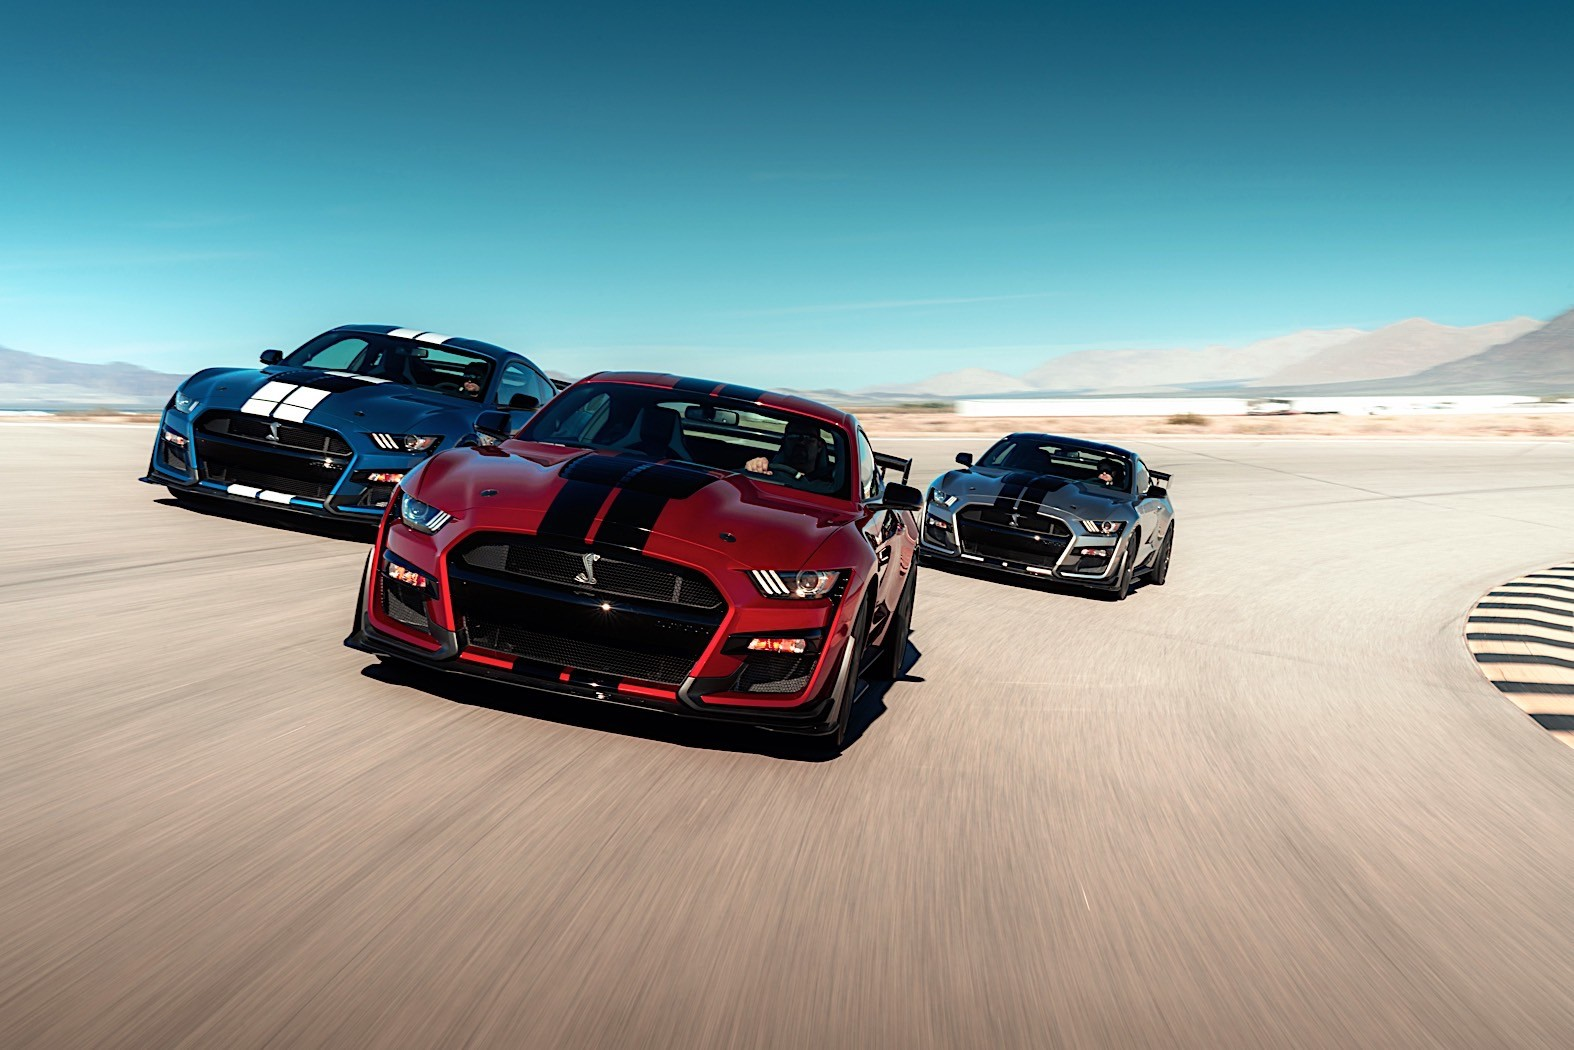 Dch Ford Of Thousand Oaks >> U.S. Dealer Marks Up 2020 Ford Mustang Shelby GT500 to $170,000 - autoevolution